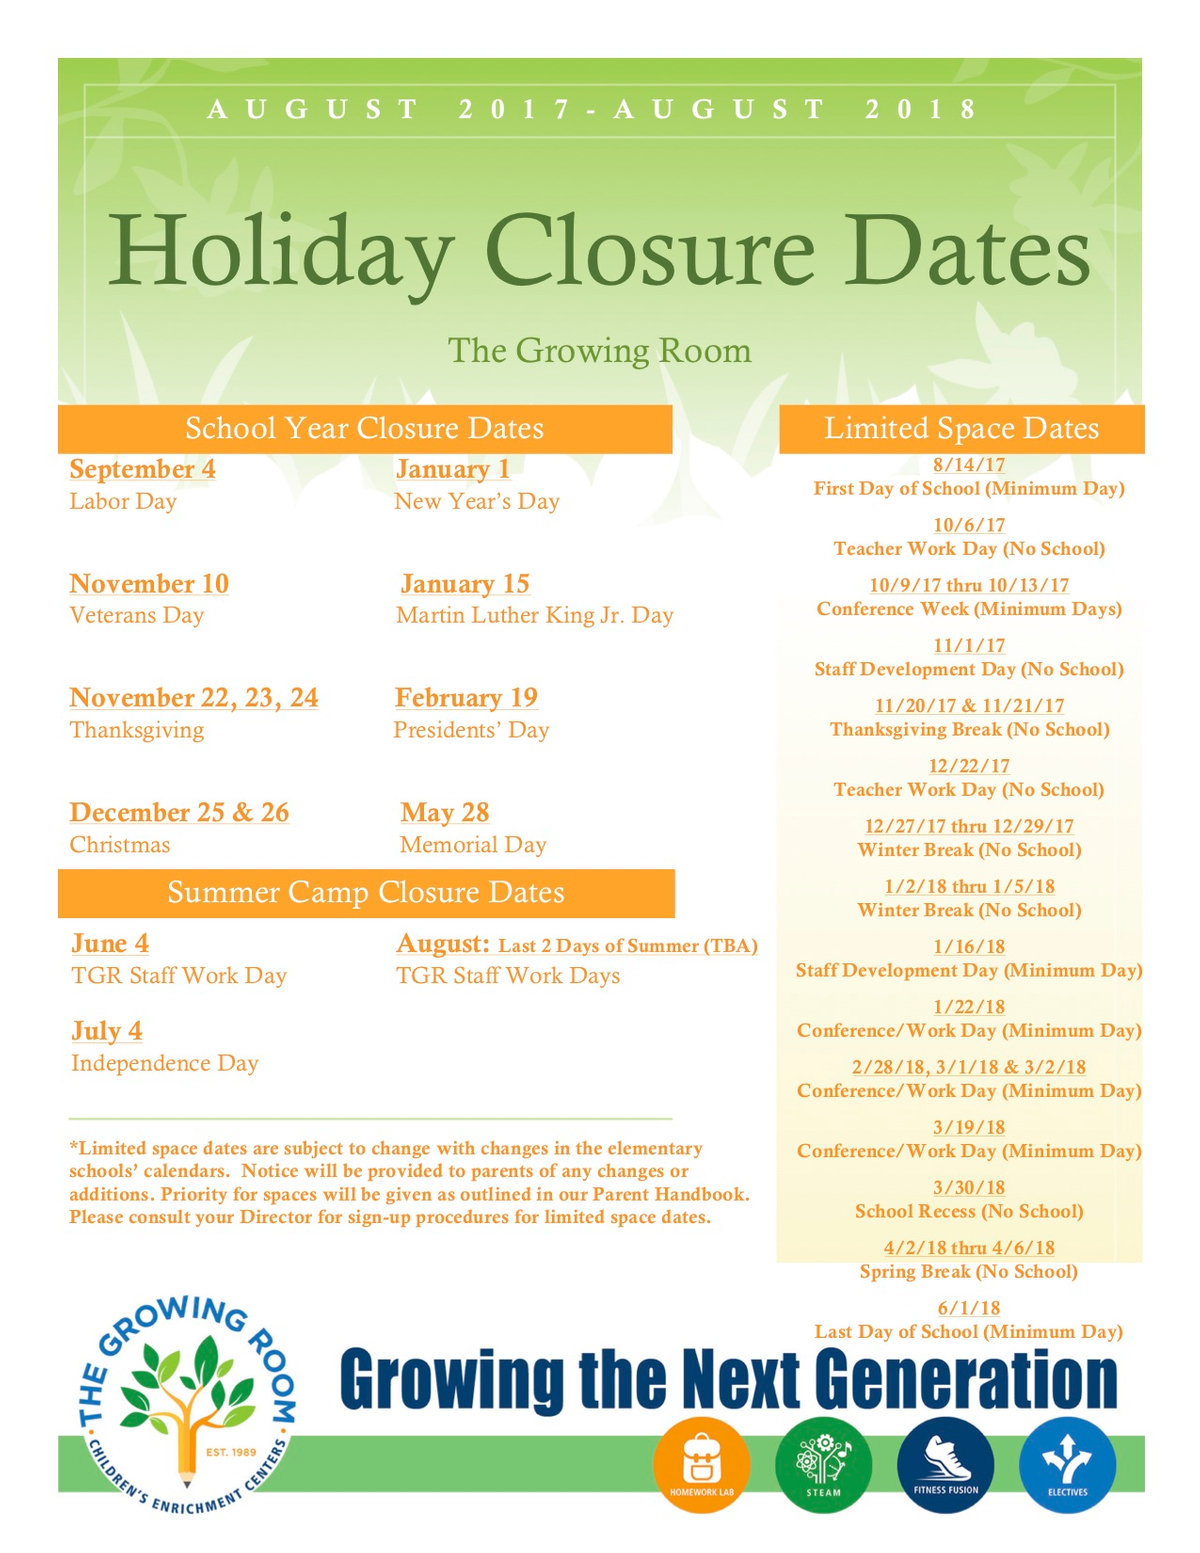 Holiday Closure Dates 2017_2018.jpg